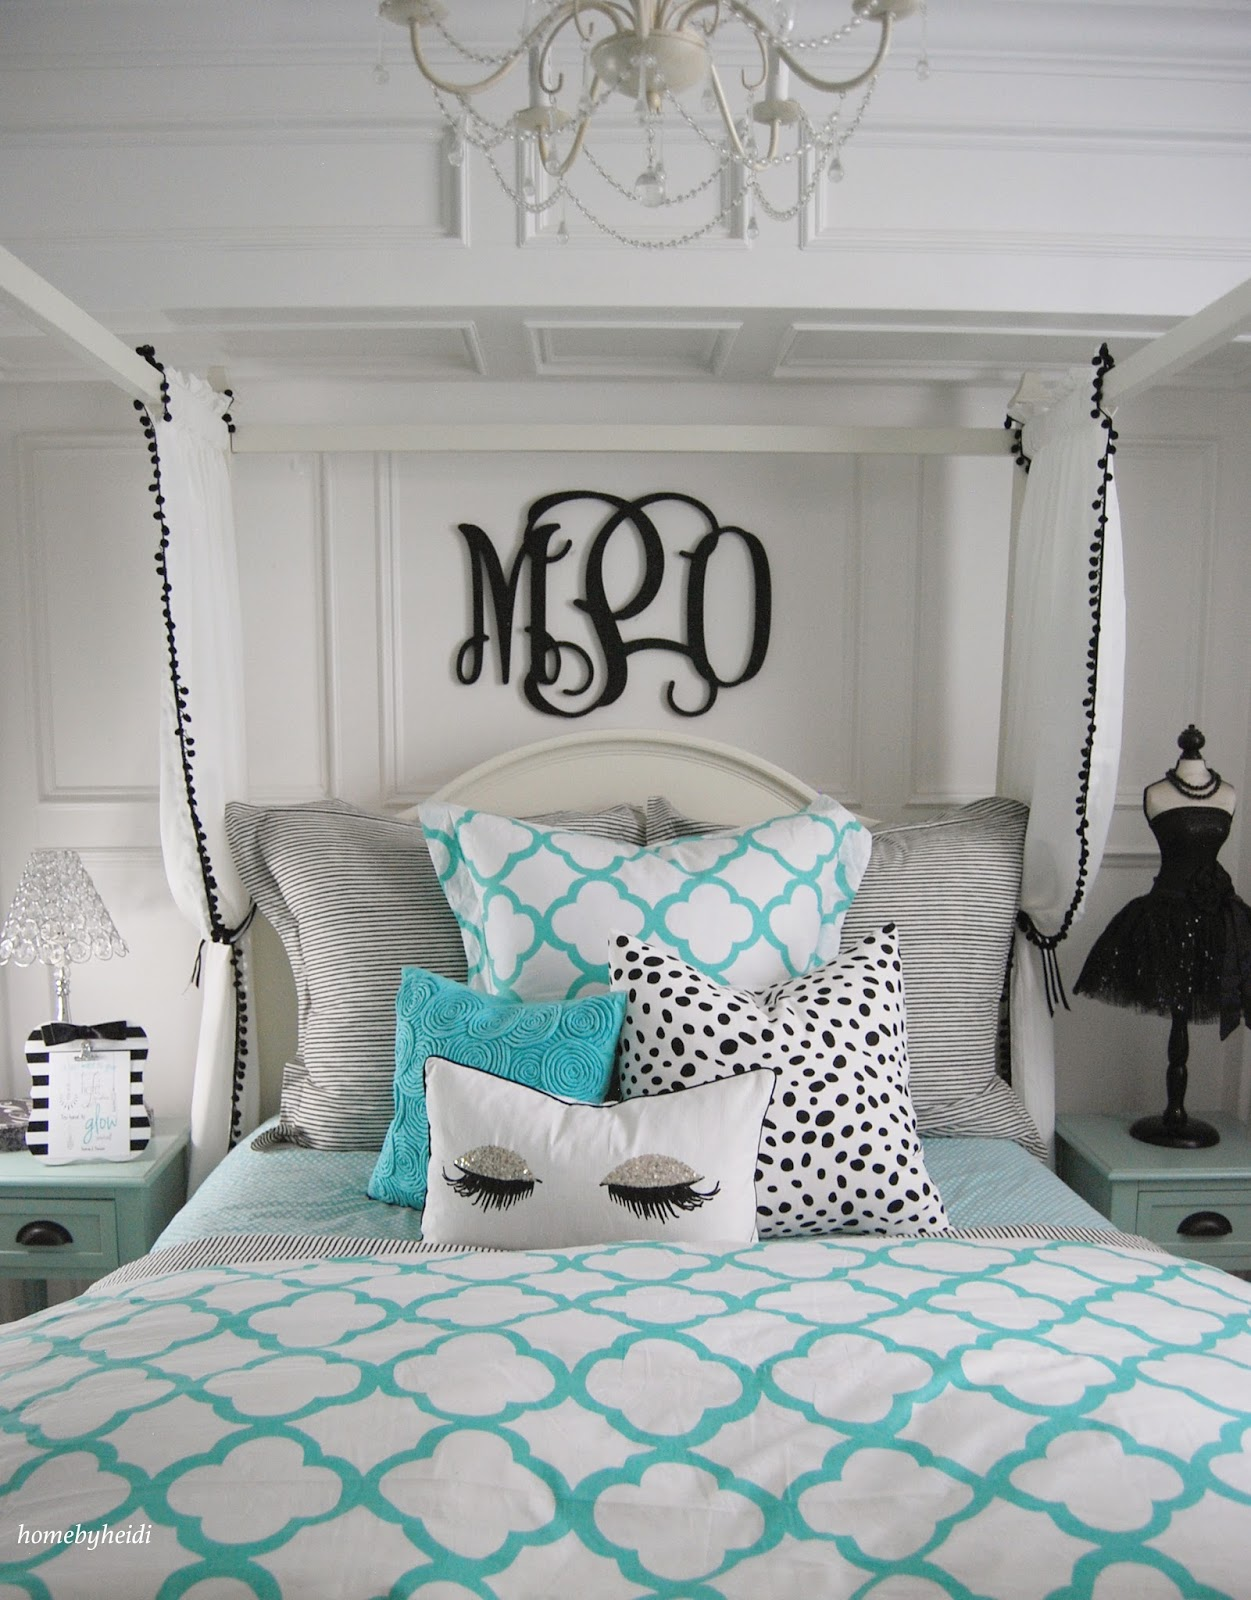 Home by heidi tiffany inspired bedroom for 14 year old room ideas